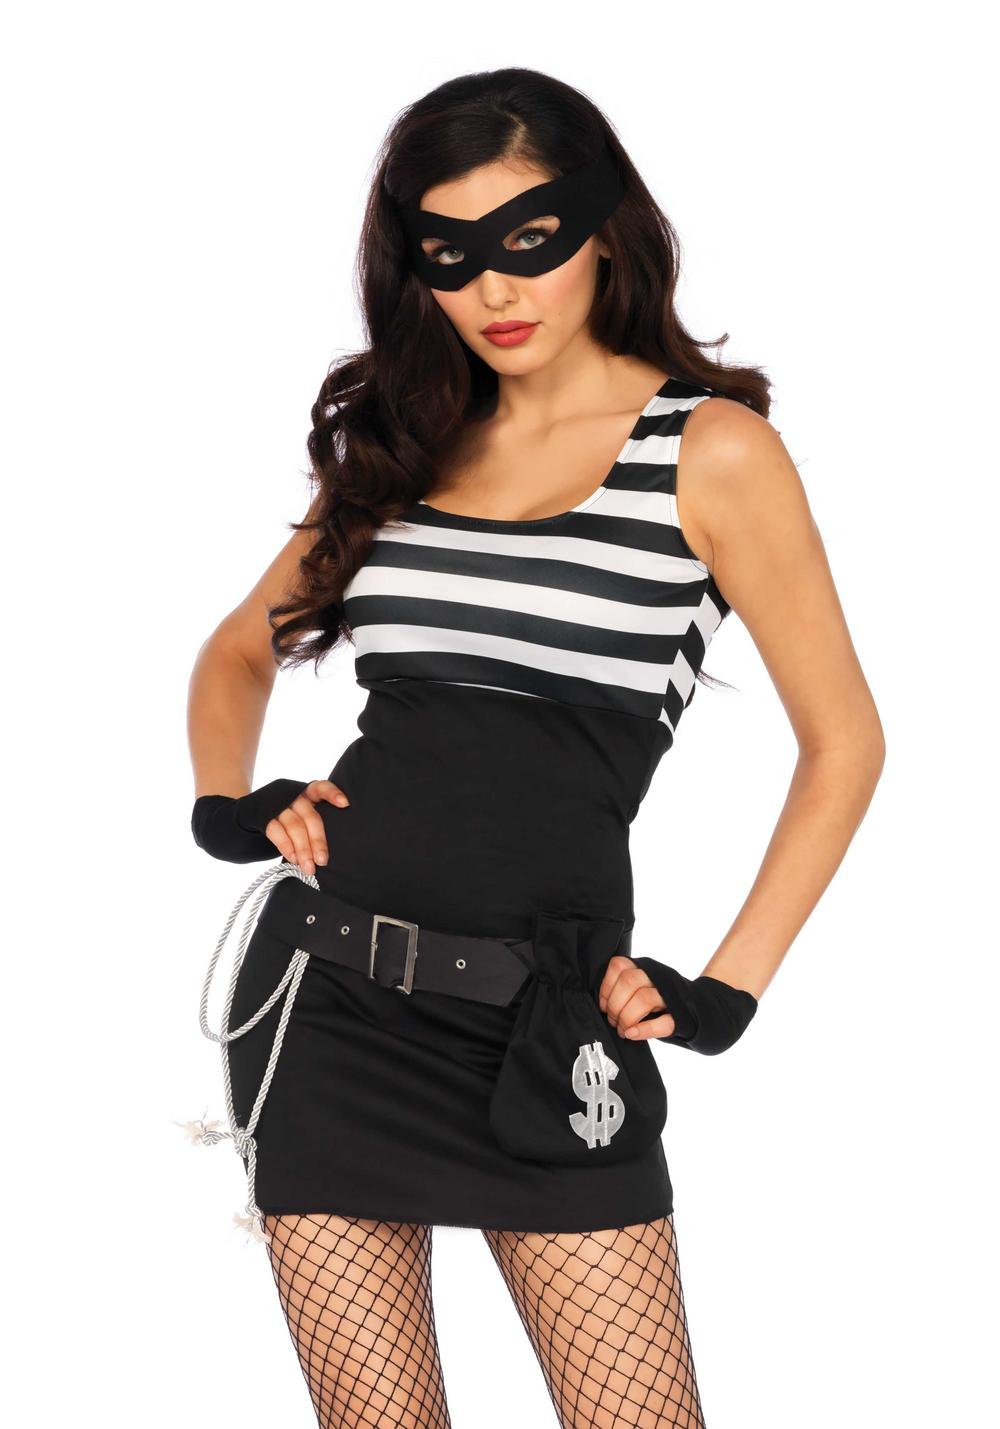 Bank Robbin' Bandit Ladies Costume